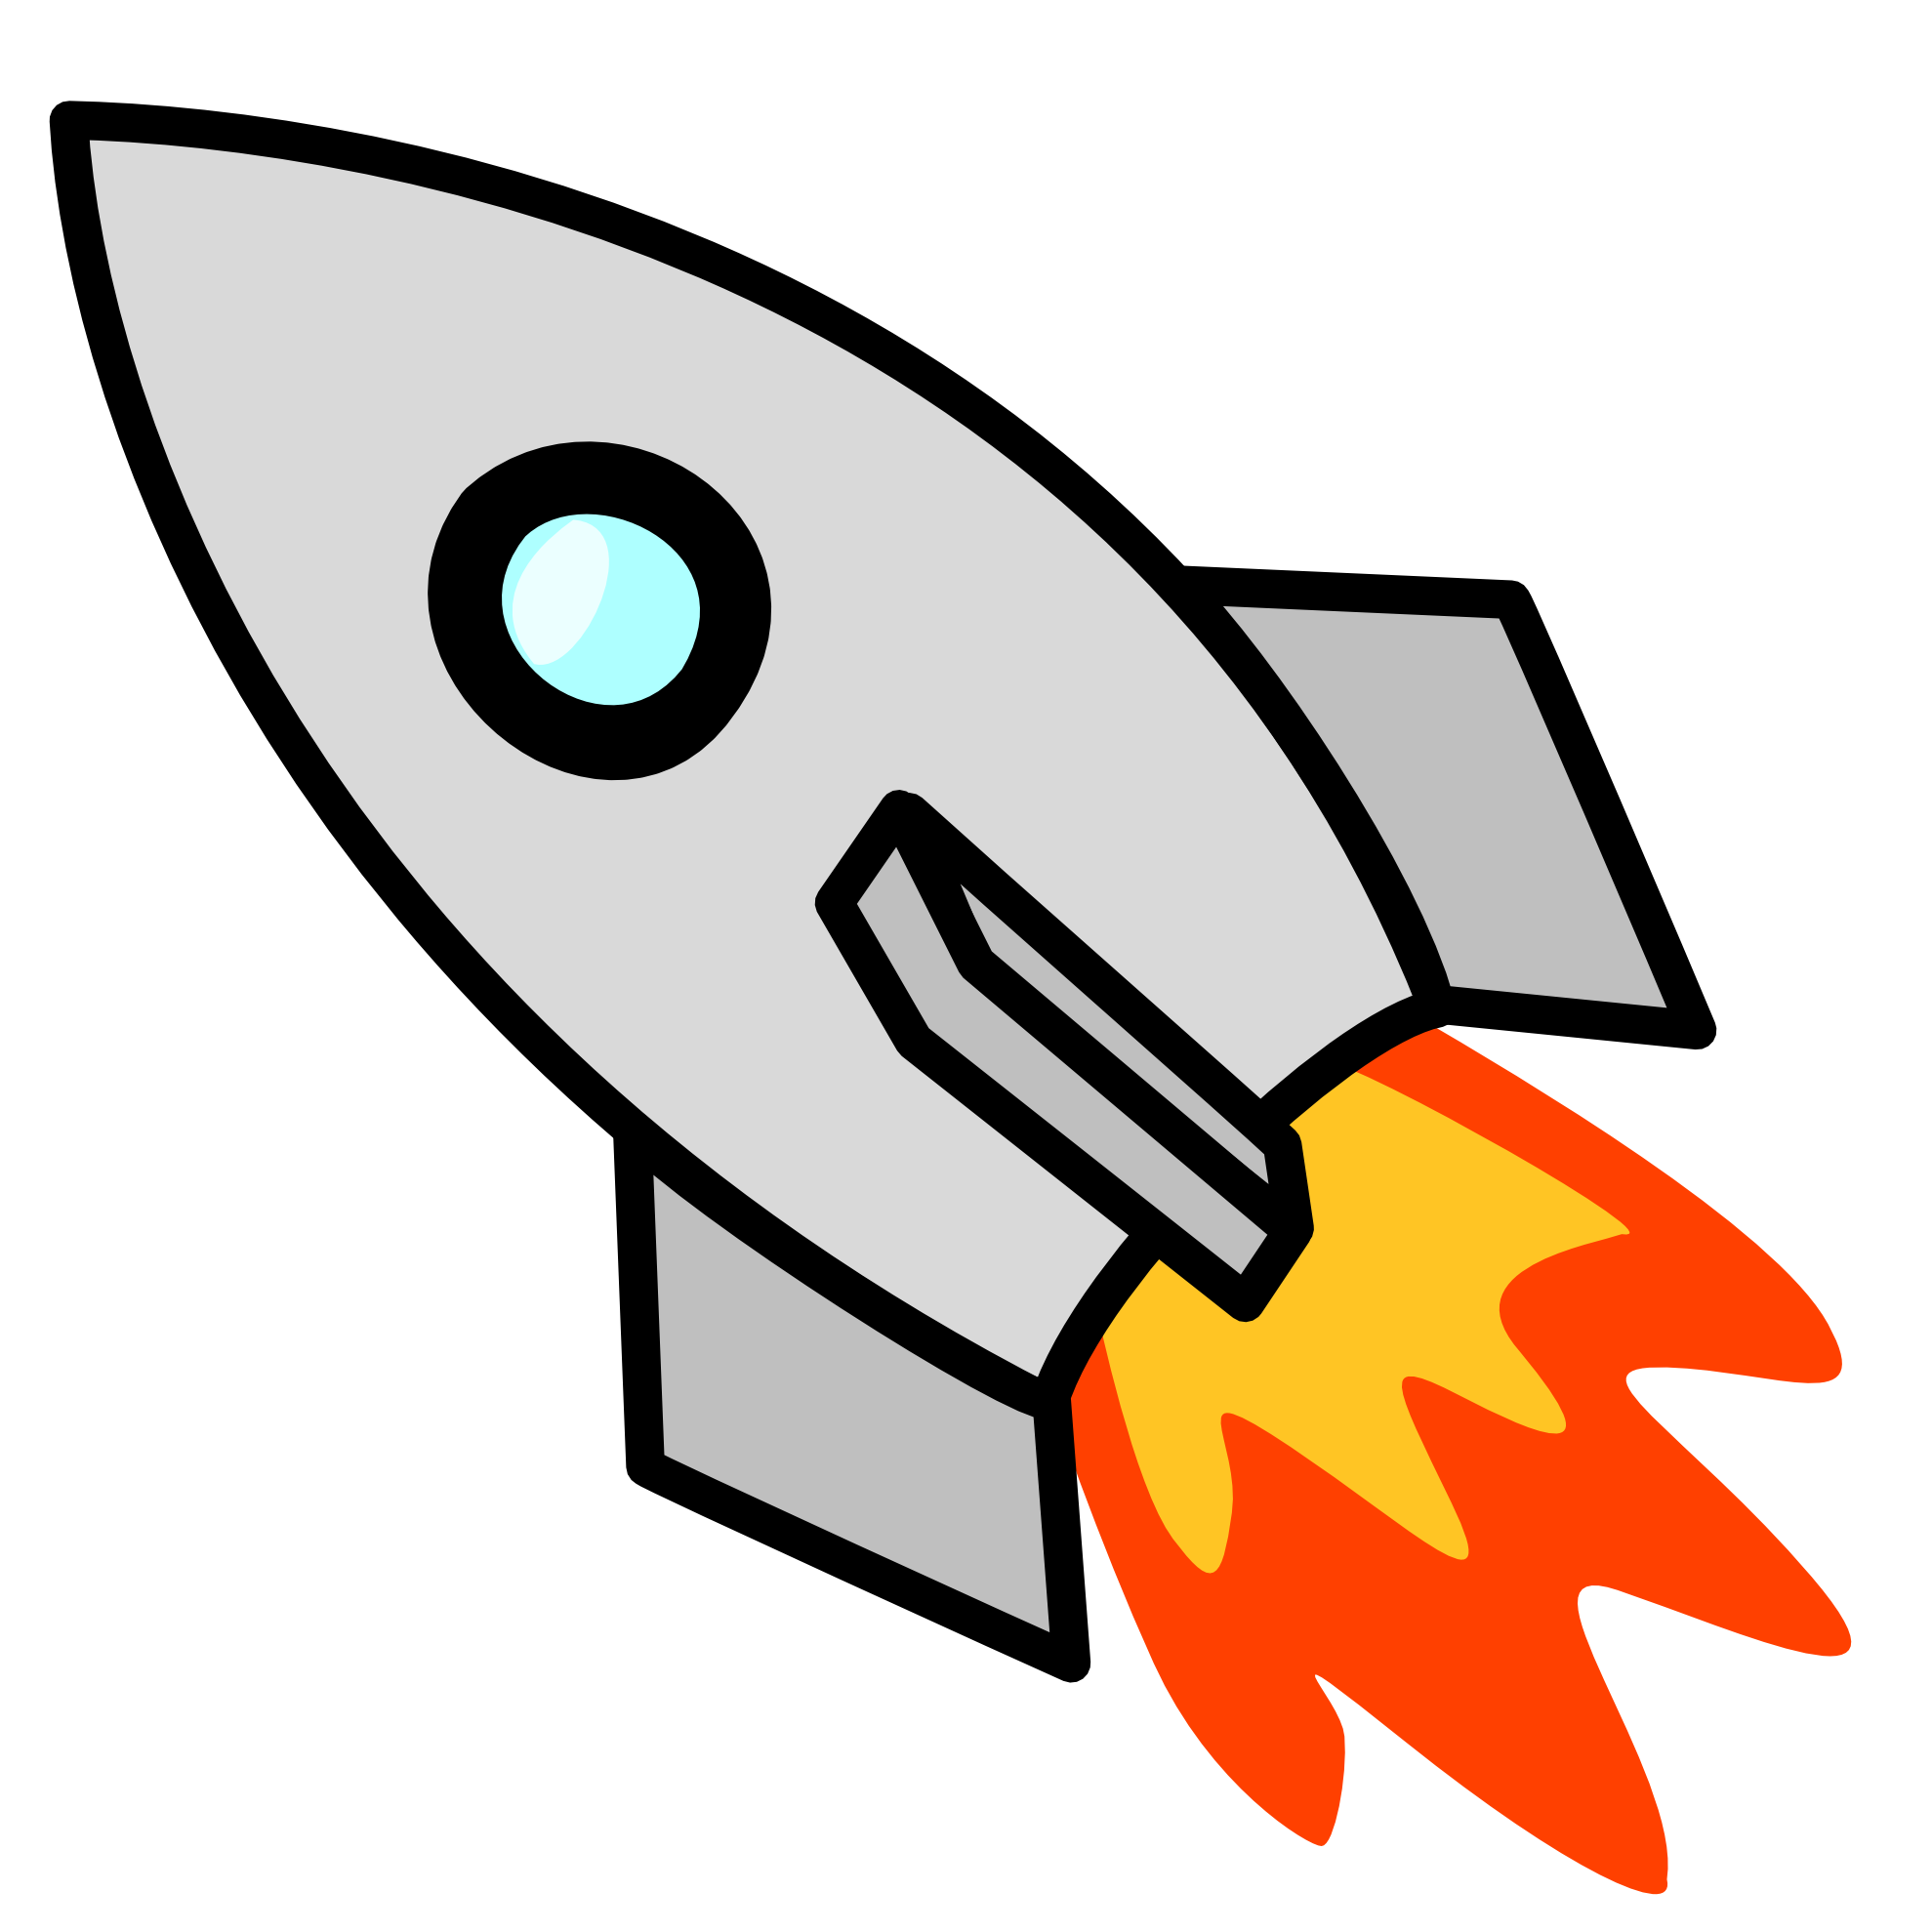 Rocket clipart #17, Download drawings